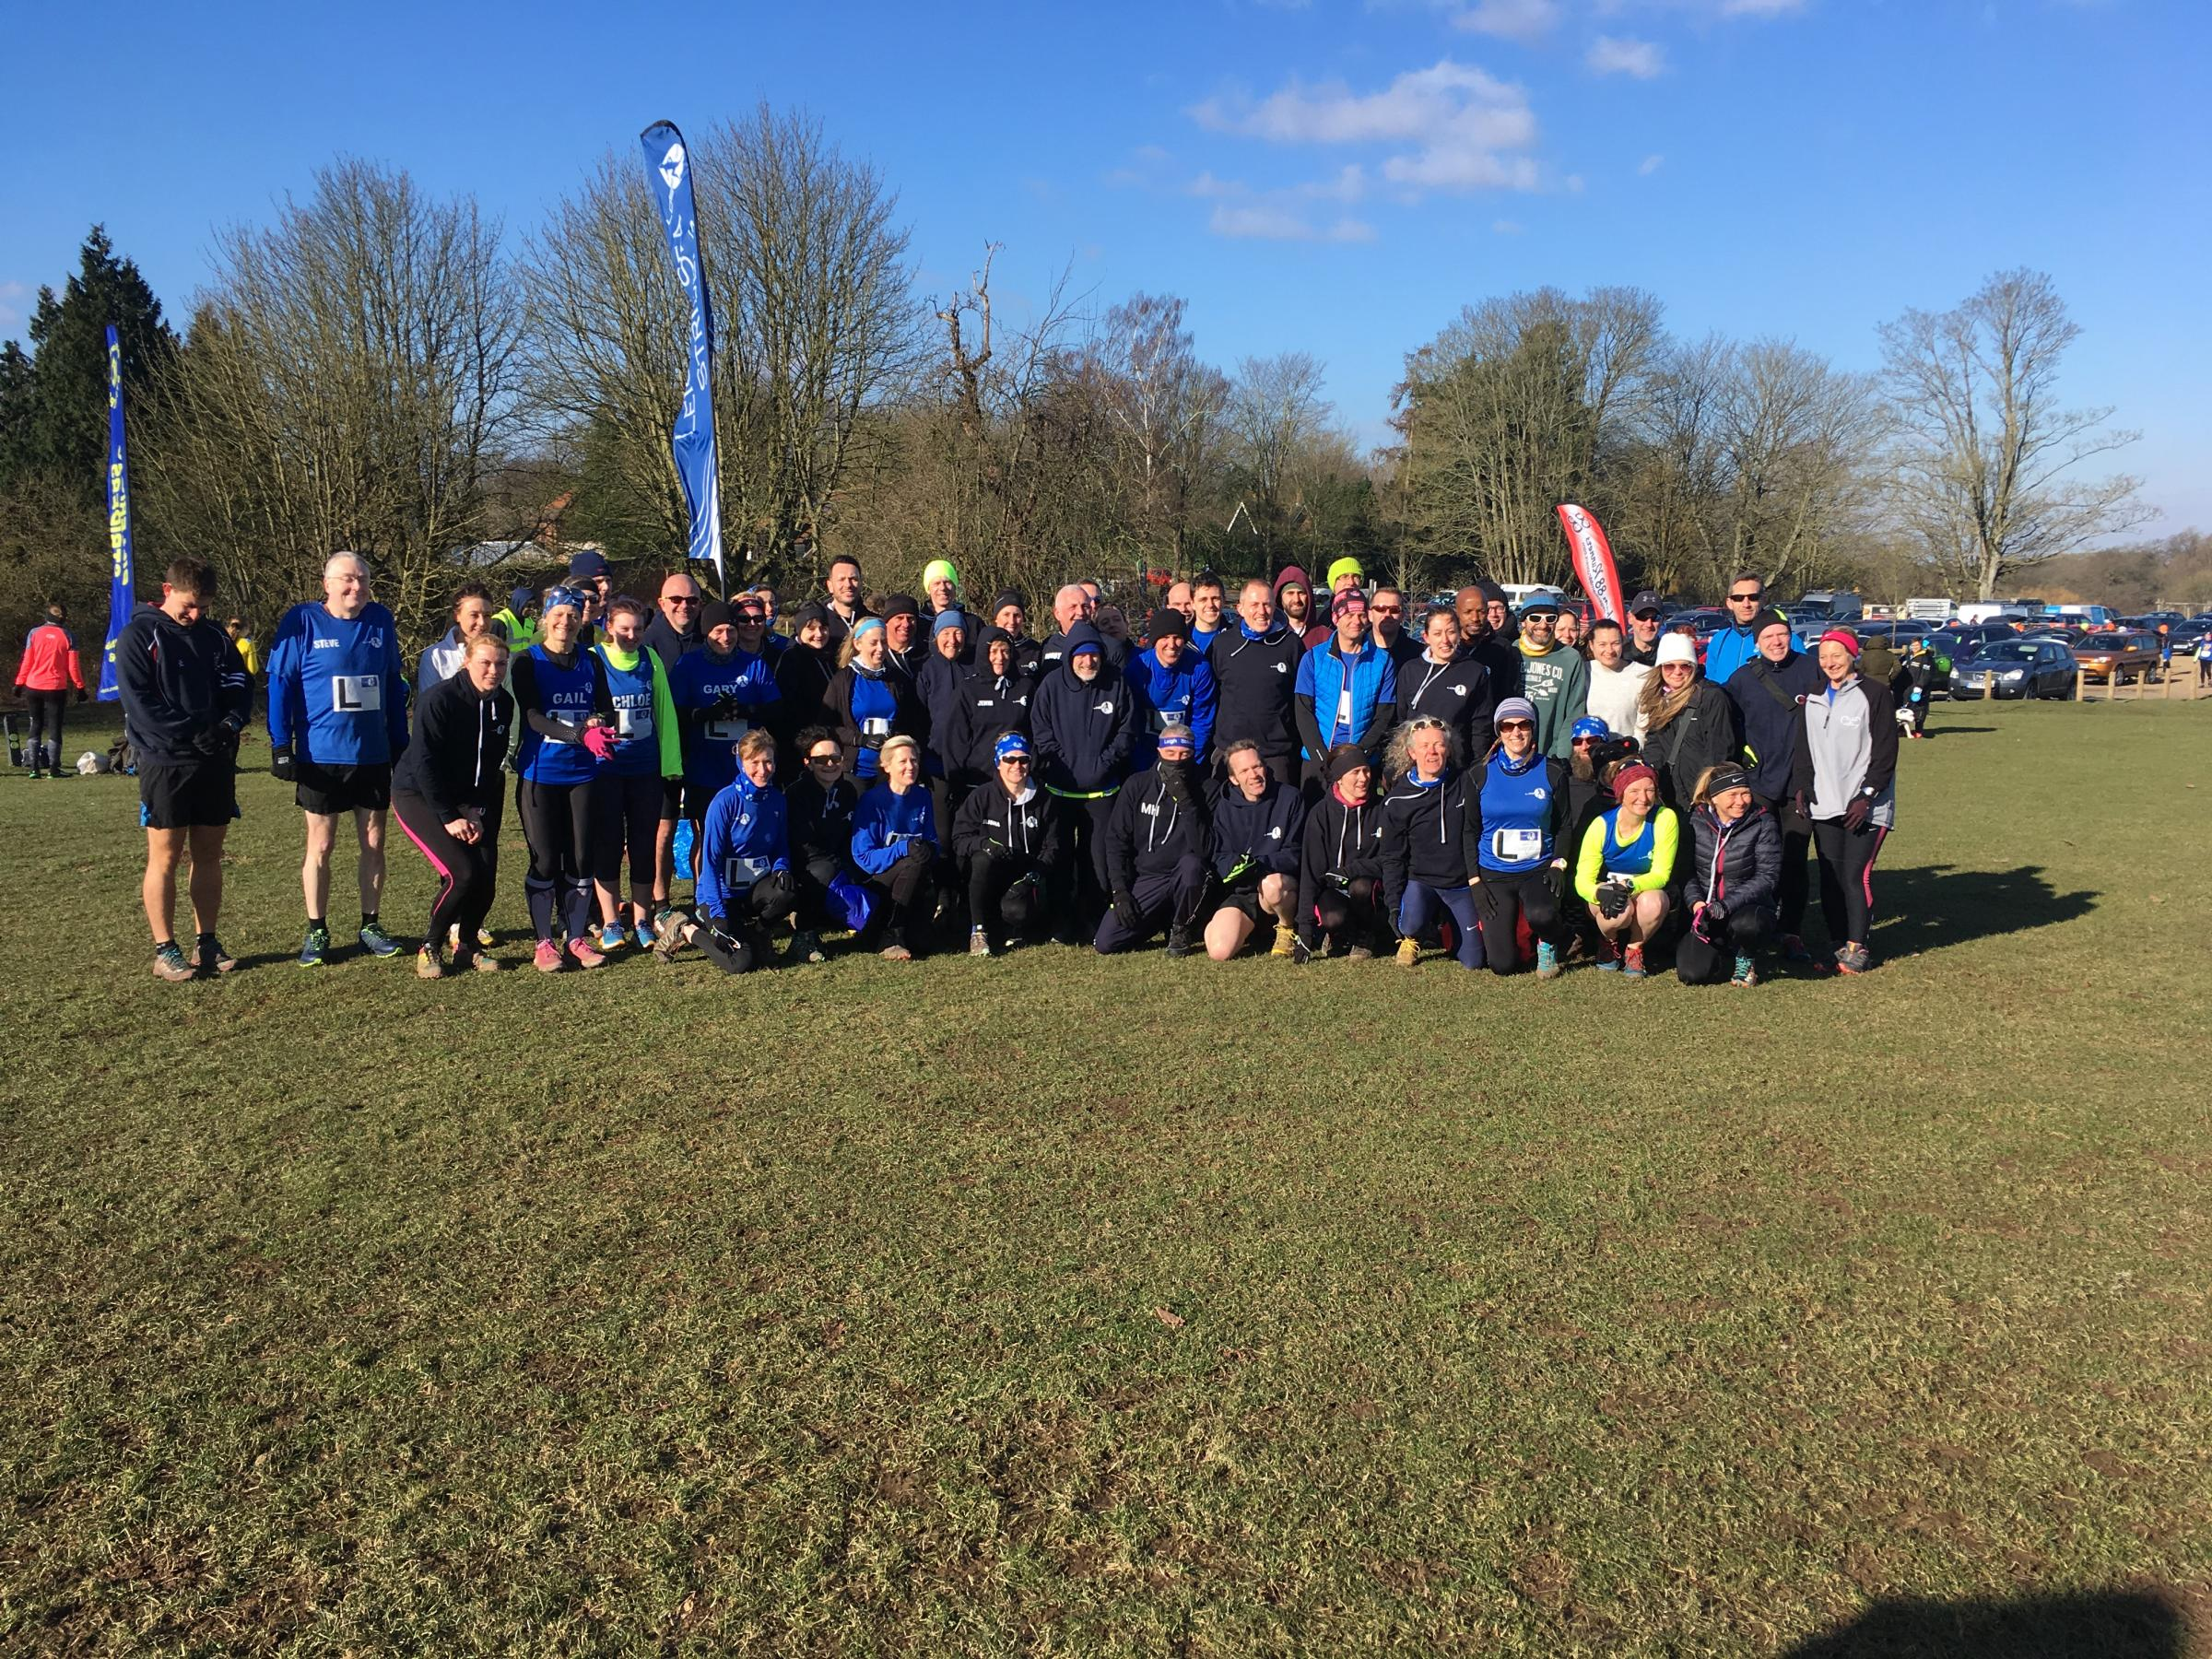 Completing the campaign - Leigh Striders boasted 55 members at the final fixture of the South Essex Cross Country League season